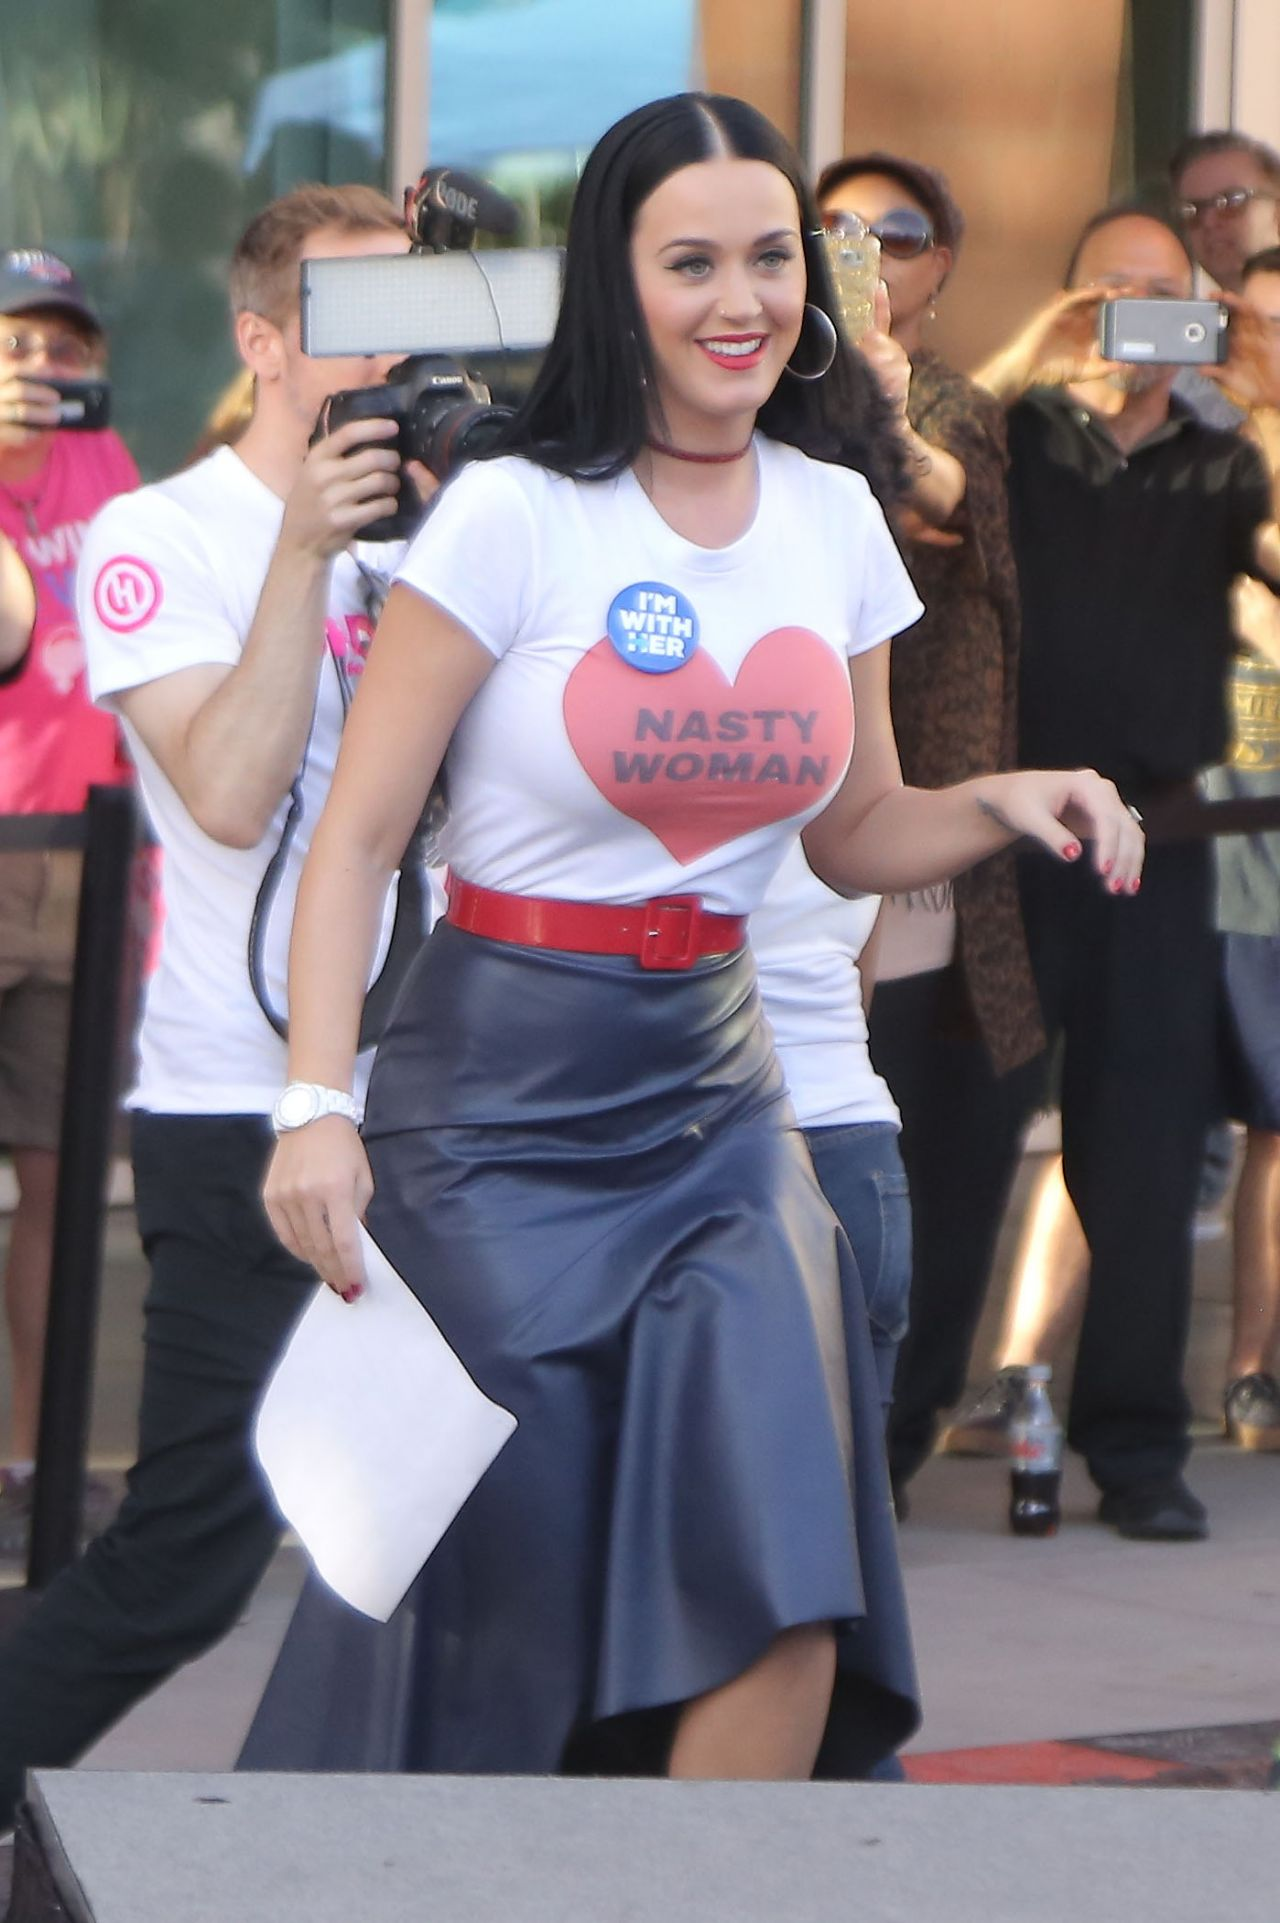 Katy Perry - Wears T-Shirt That Reads Nasty Woman At -1348